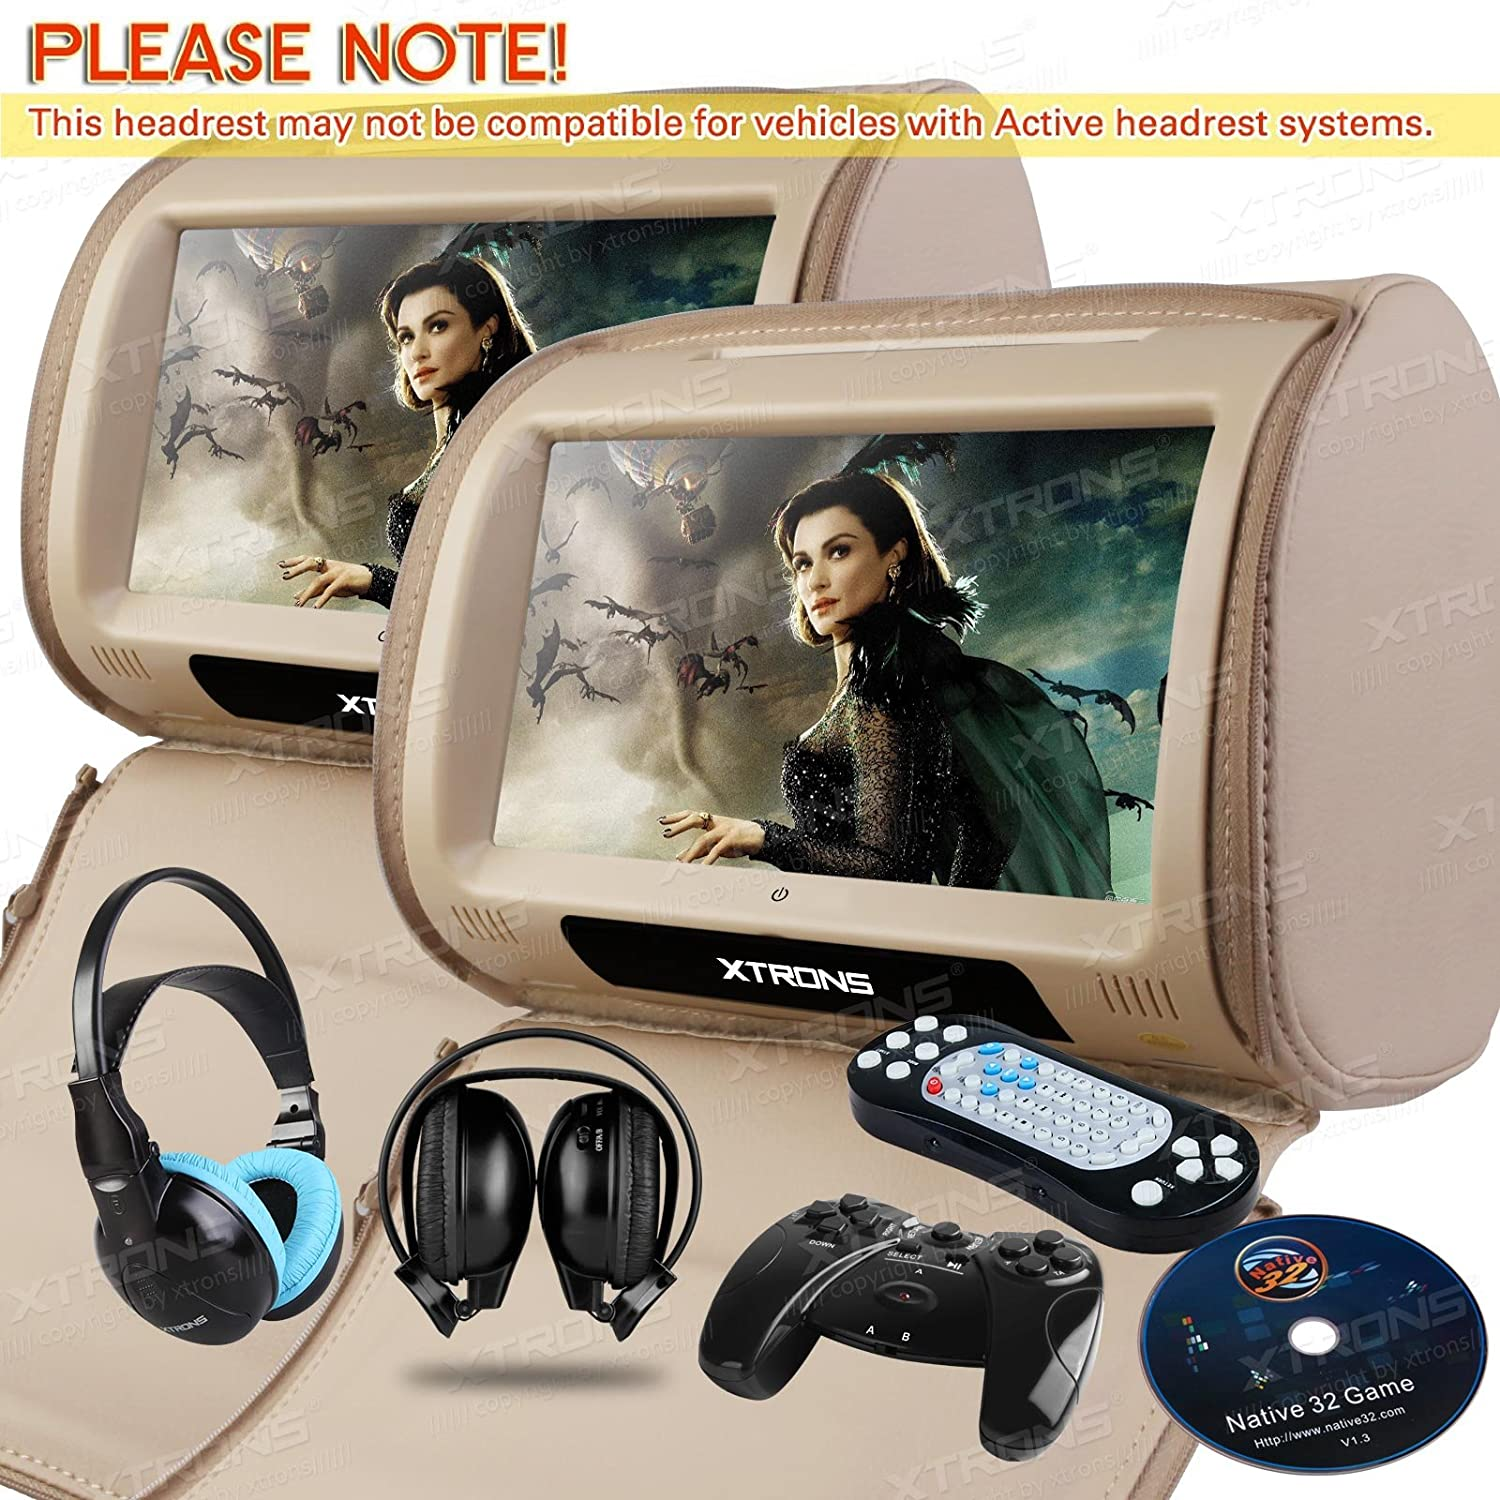 Xtrons Beige 2 X 9 Twin Car Headrest Dvd Player Pillow The Circuit Diagram Of Emitter Side Touch Screen System Hd Monitor Mp3 Game Disc Ir Headphones Electronics